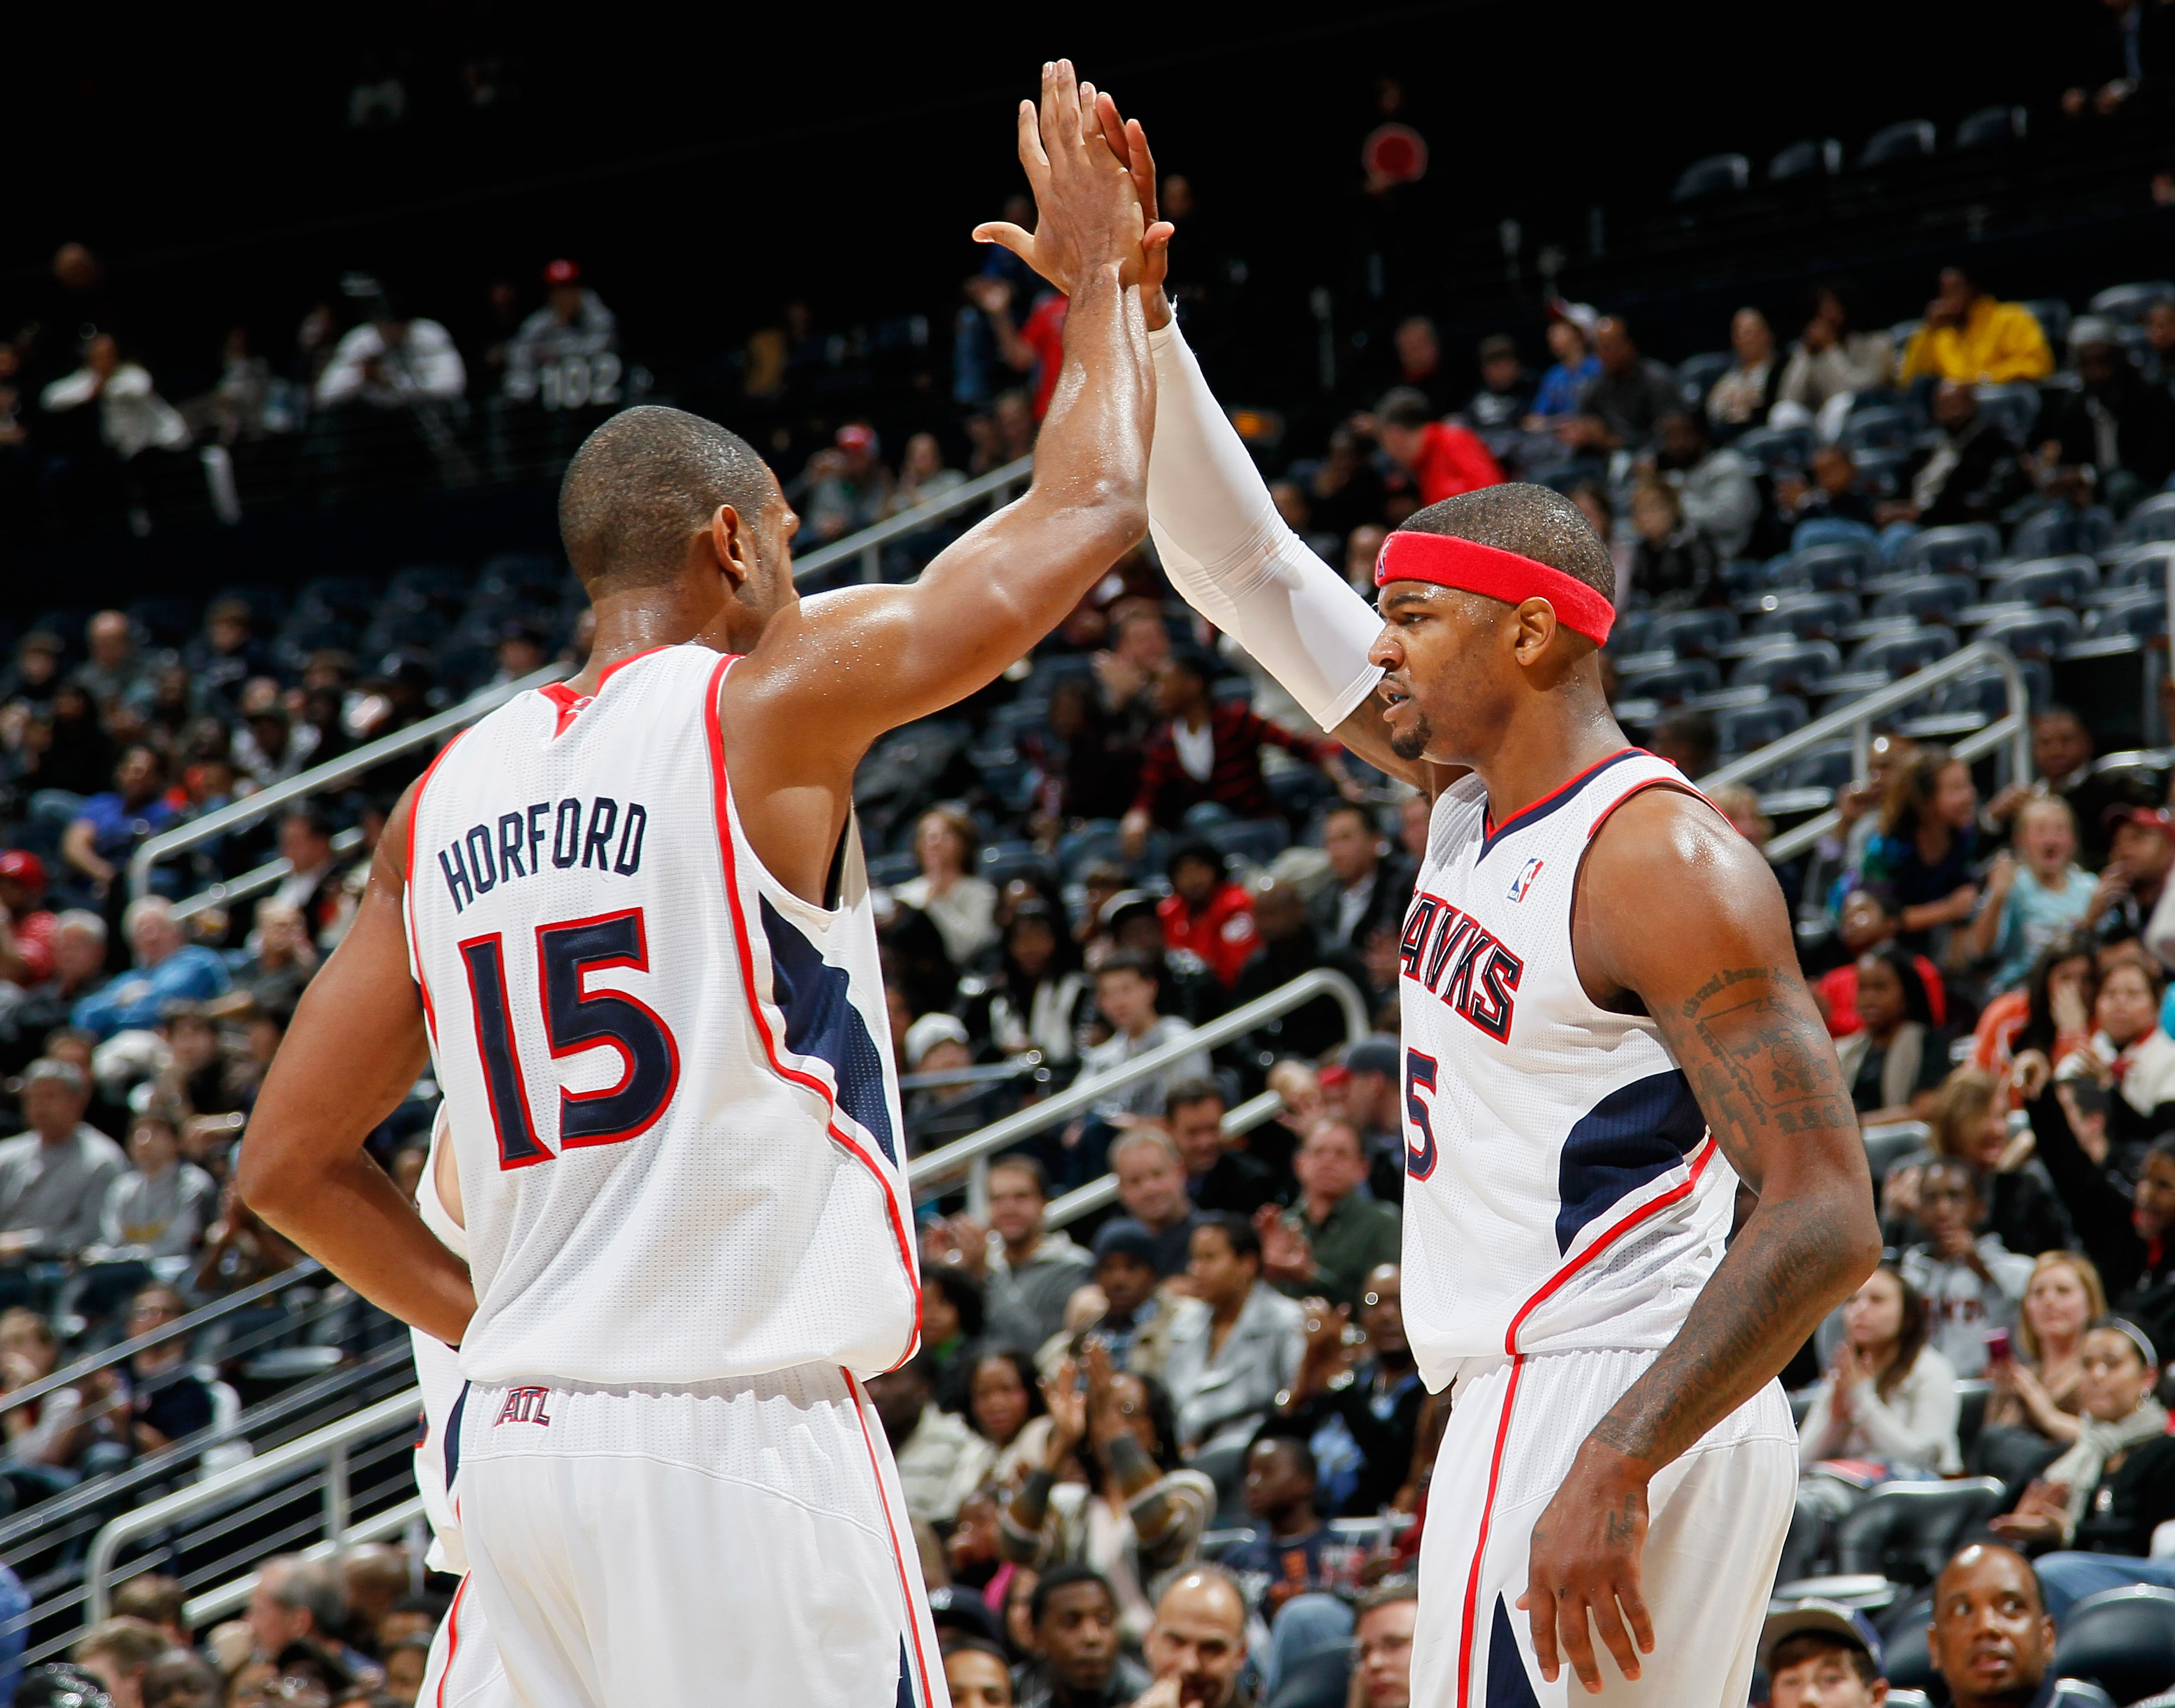 ATLANTA, GA - DECEMBER 11:  Josh Smith #5 and Al Horford #15 of the Atlanta Hawks react after Smith's basket and foul against the Indiana Pacers at Philips Arena on December 11, 2010 in Atlanta, Georgia.  NOTE TO USER: User expressly acknowledges and agre